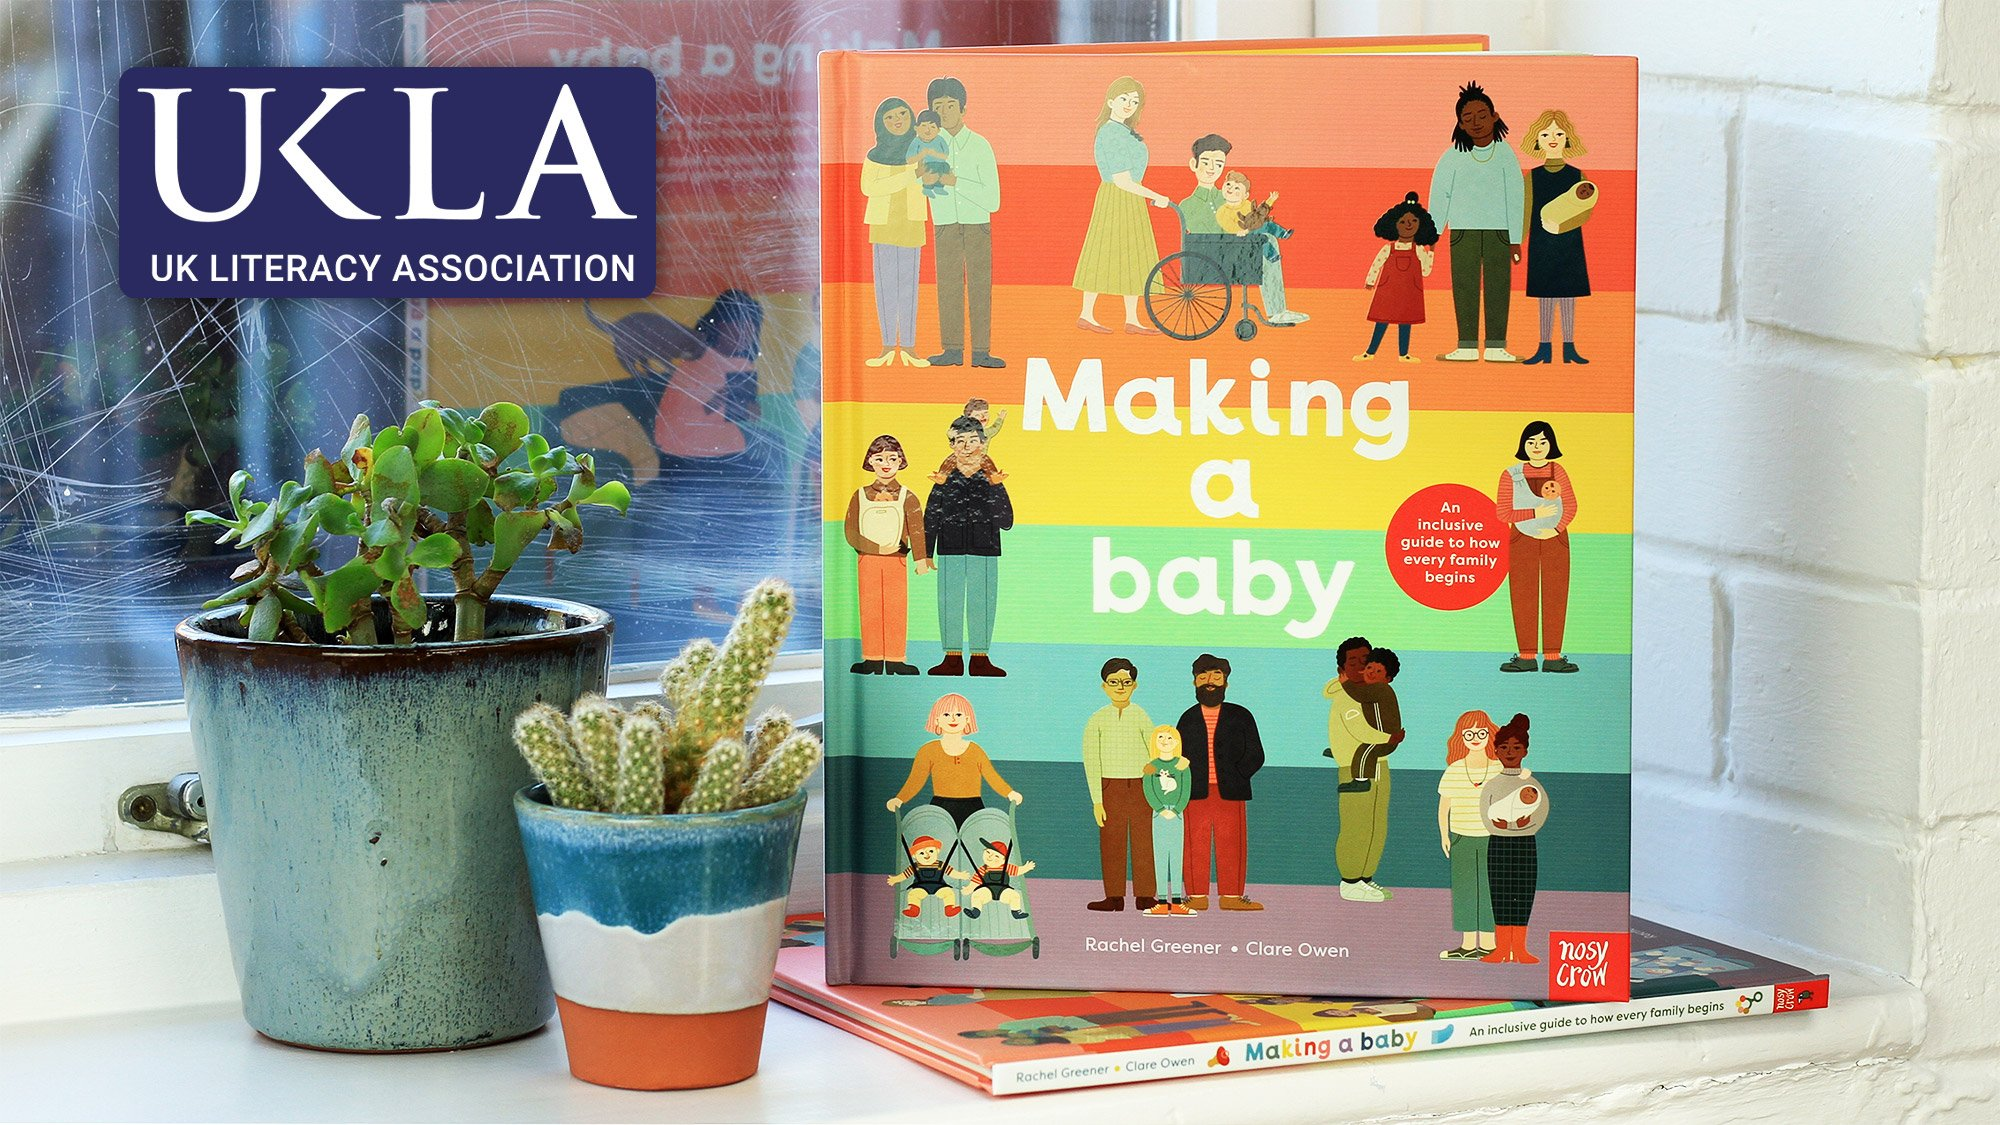 Making a Baby has been longlisted for UKLA Book Awards